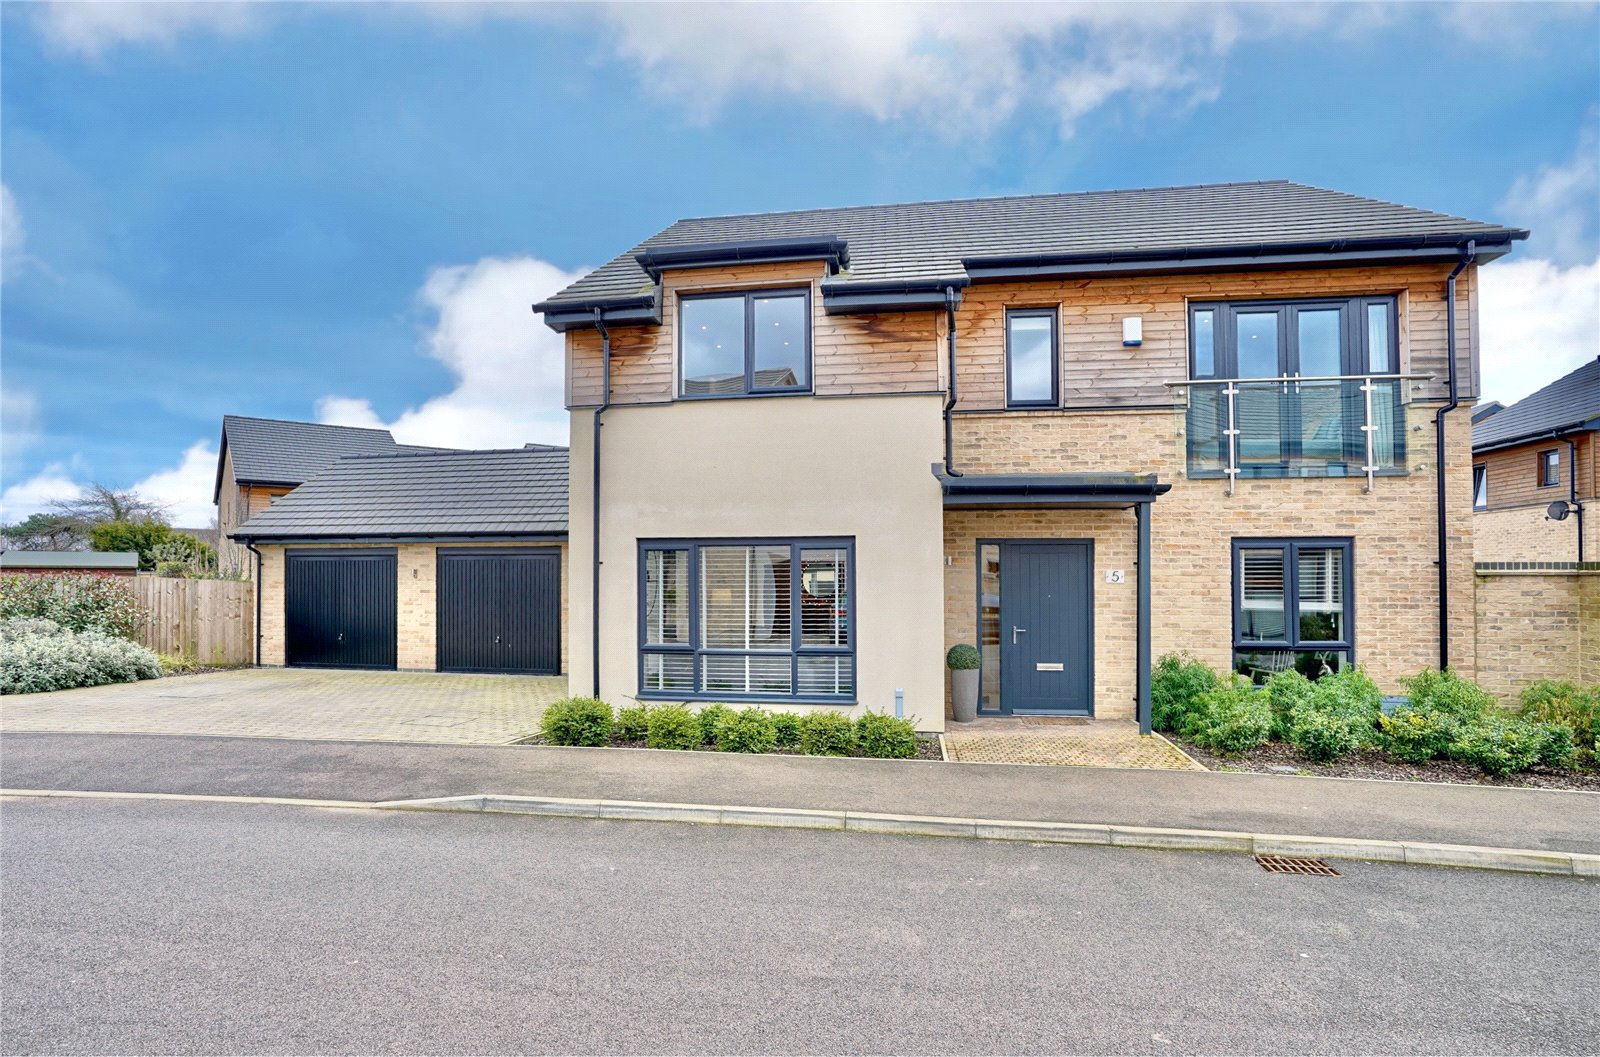 4 bed house for sale in Eaton Ford, PE19 7DE - Property Image 1